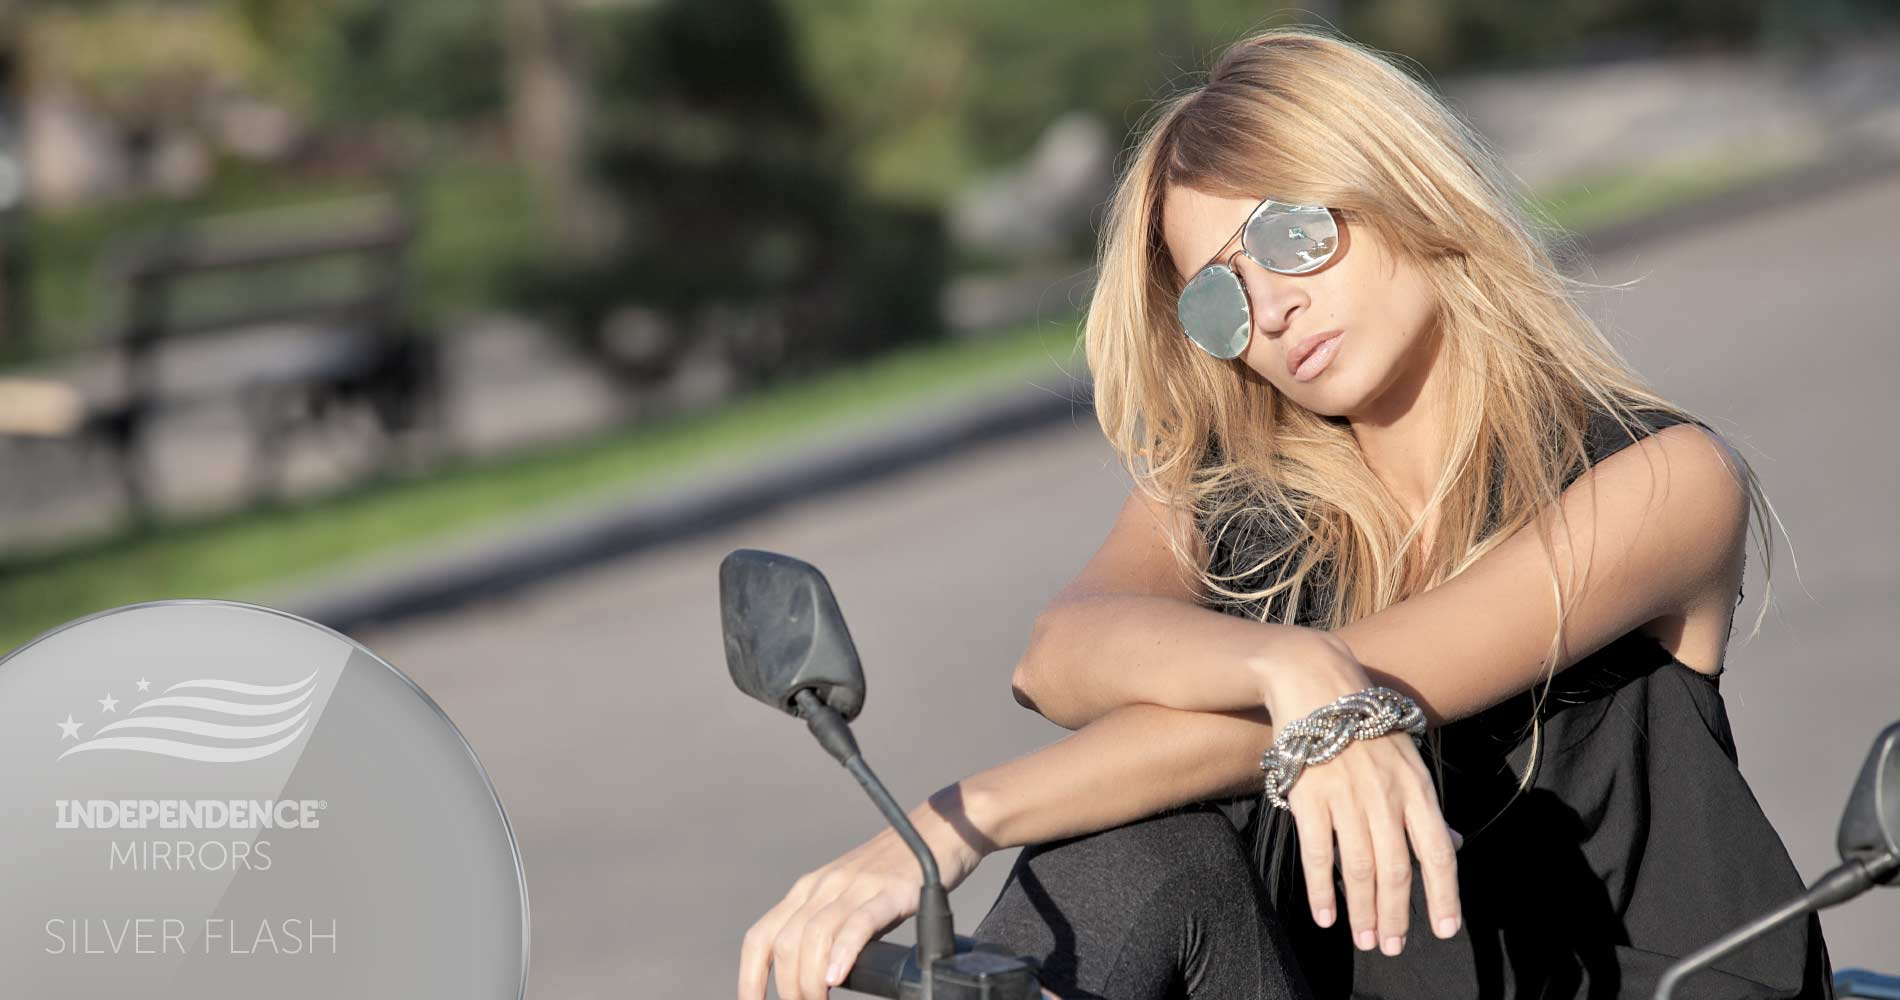 Woman sitting on a motorcycle, wearing silver flash-colored mirrored sunglasses